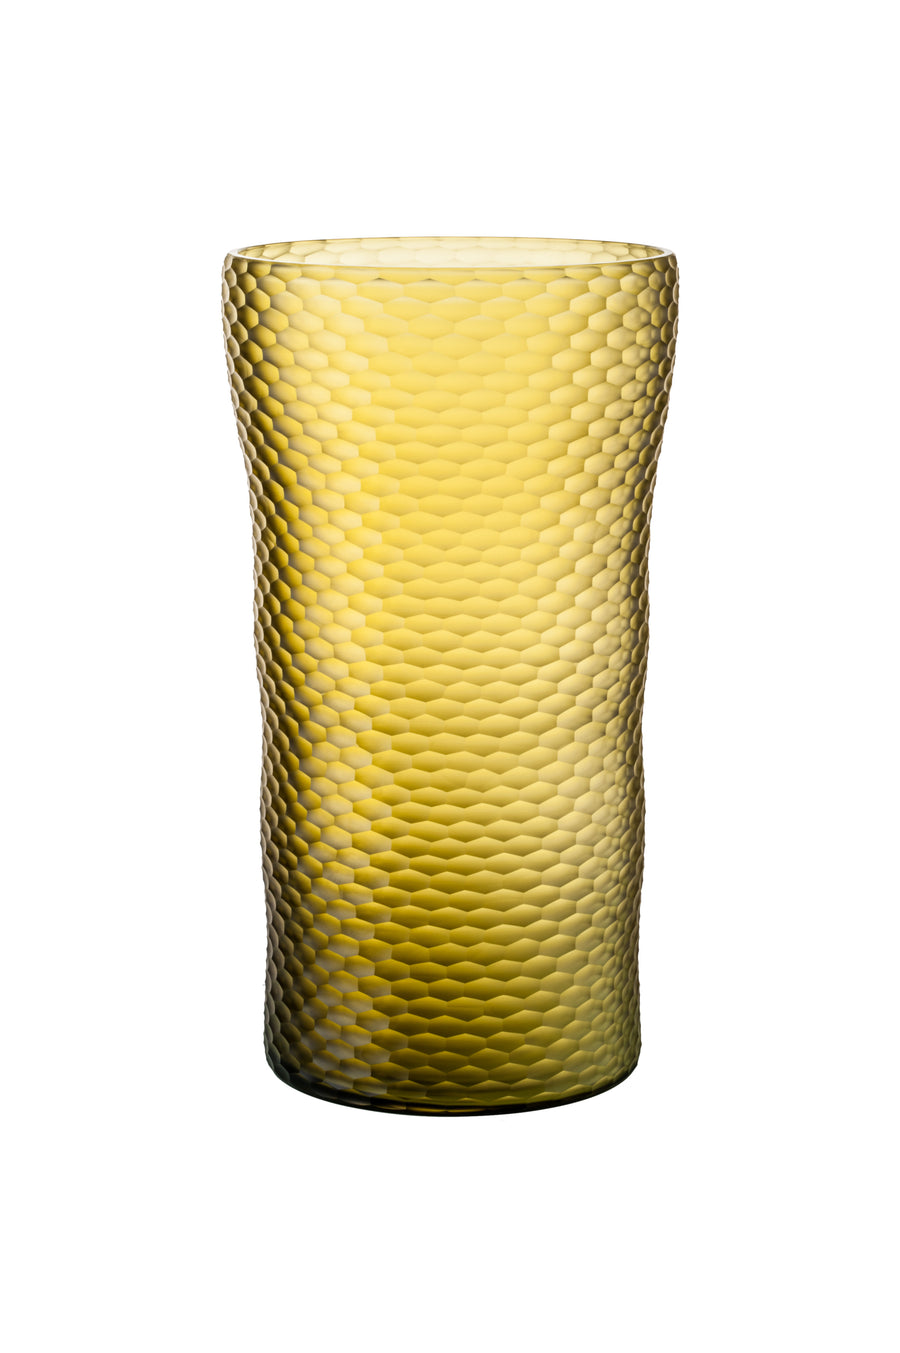 BATTUTO A NIDO D'APE Glass Vase by Carlo Scarpa for Venini - DUPLEX DESIGN